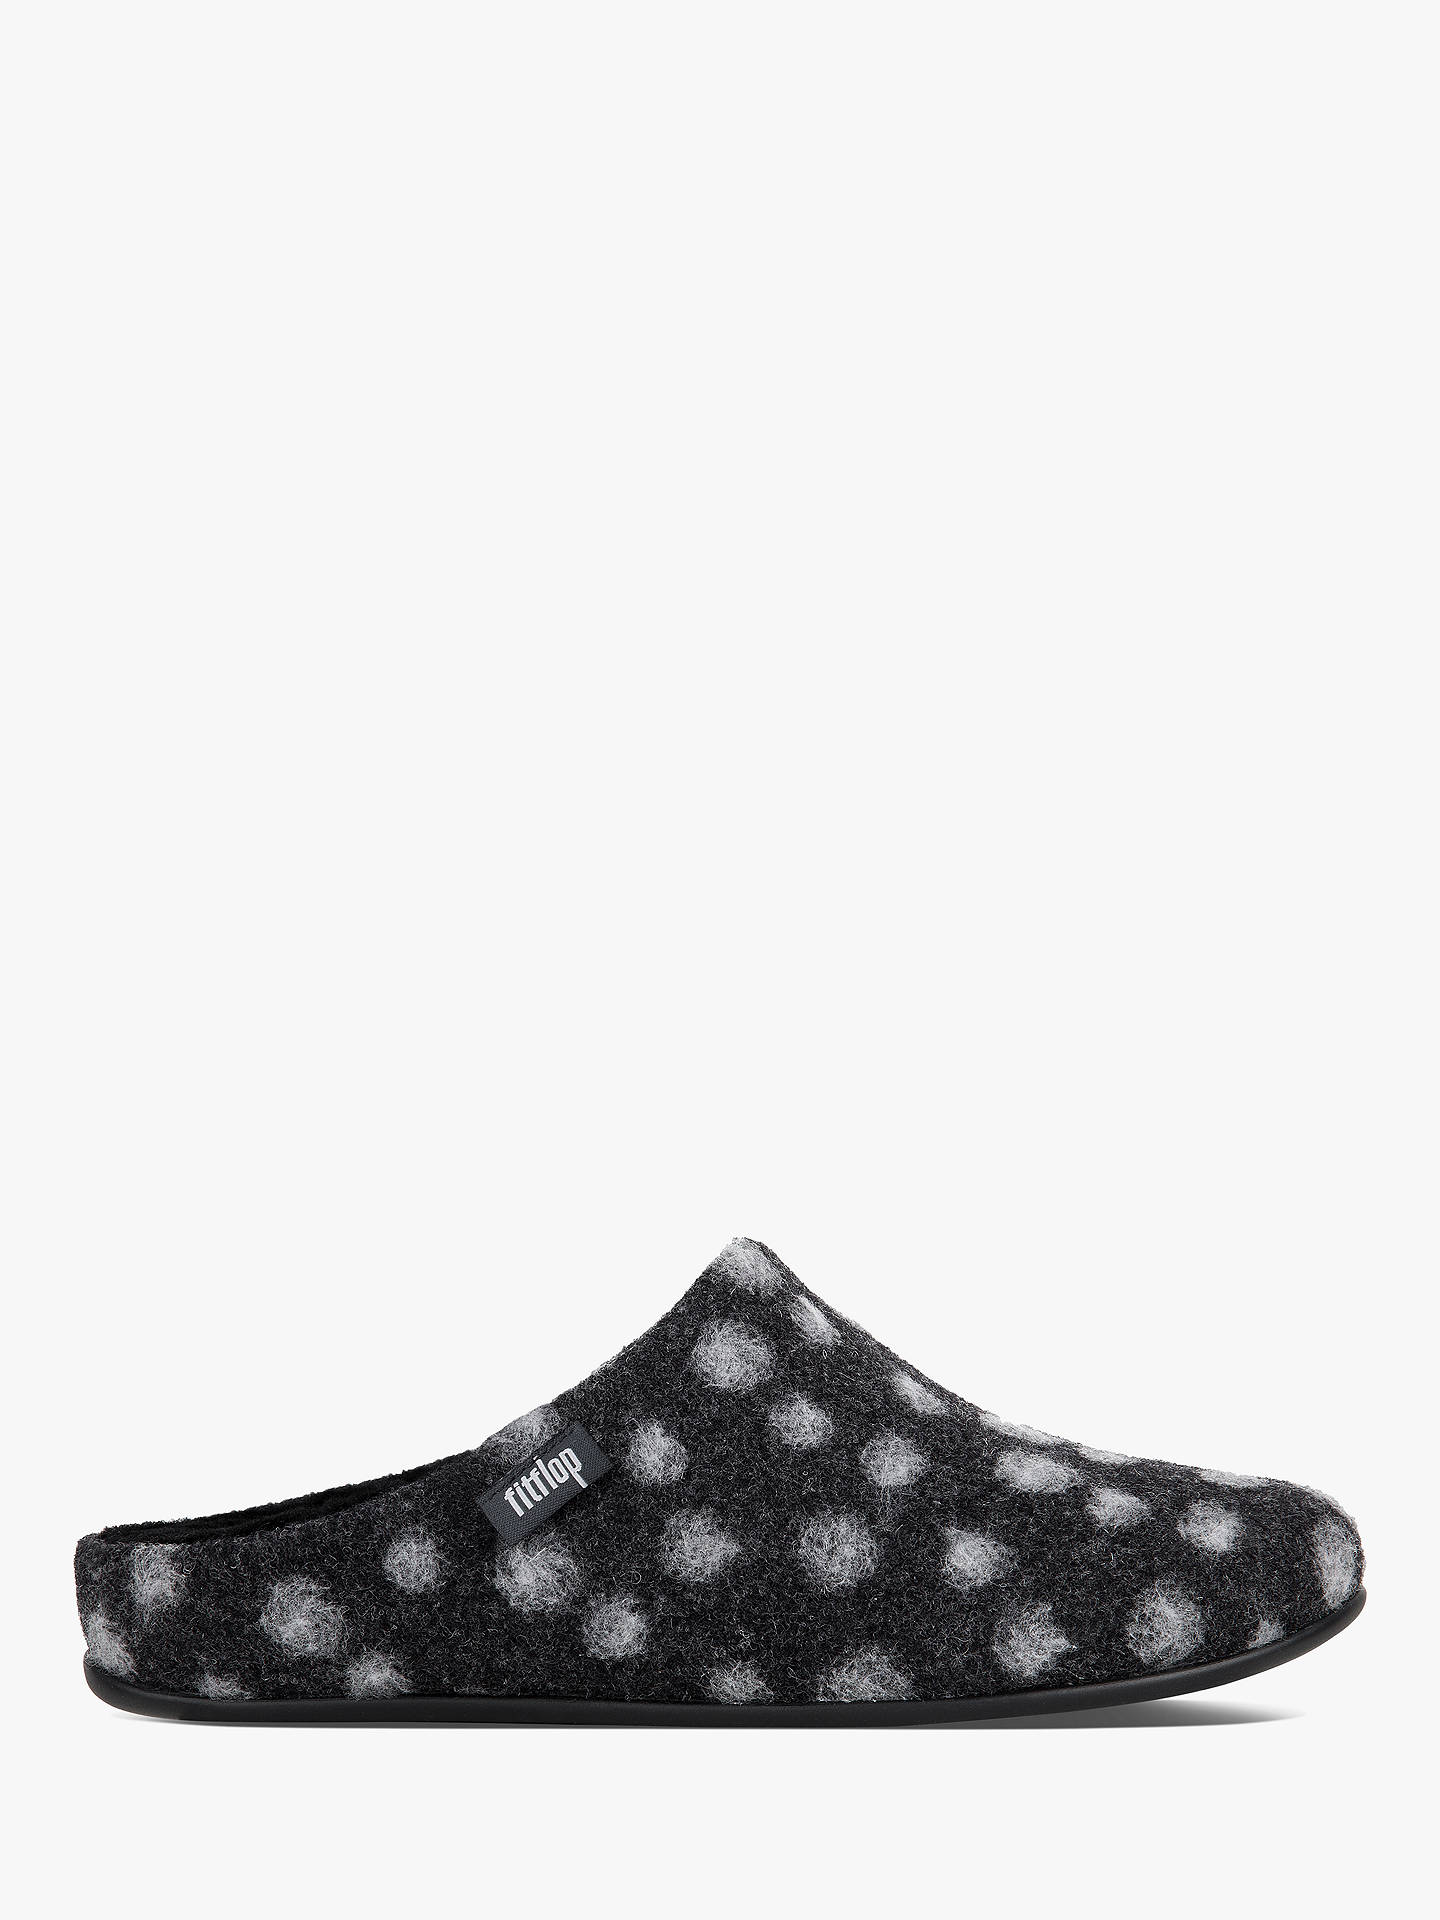 7667102cb0 Fitflop Chrissie Spot Print Woollen Slippers, Charcoal at John Lewis ...